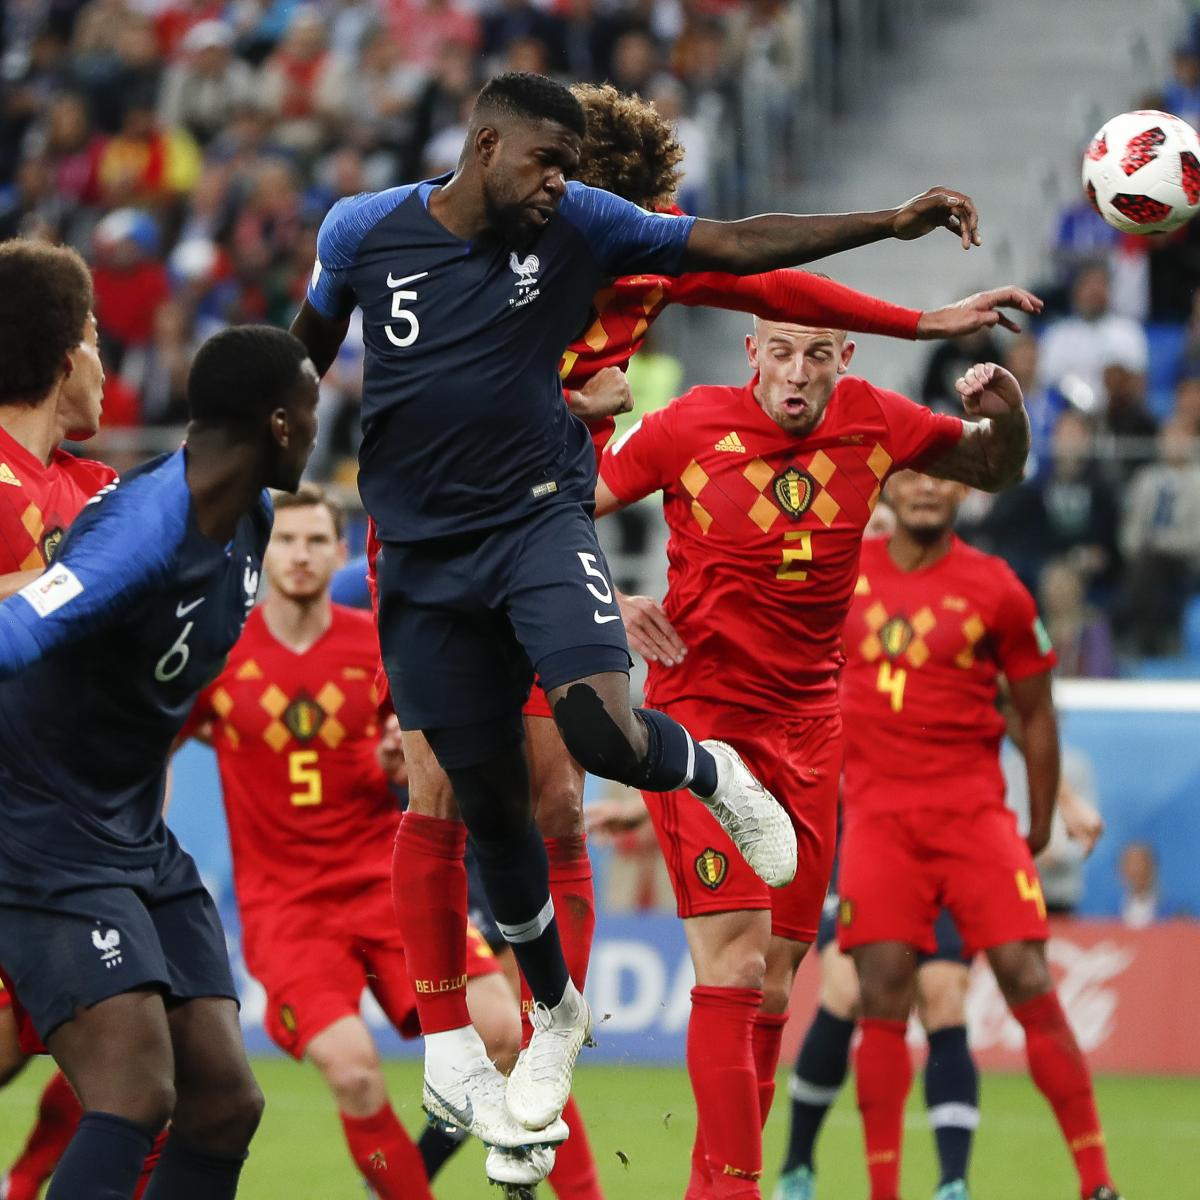 Belgium Join France on Top Spot of Latest FIFA World Rankings, Germany Climb